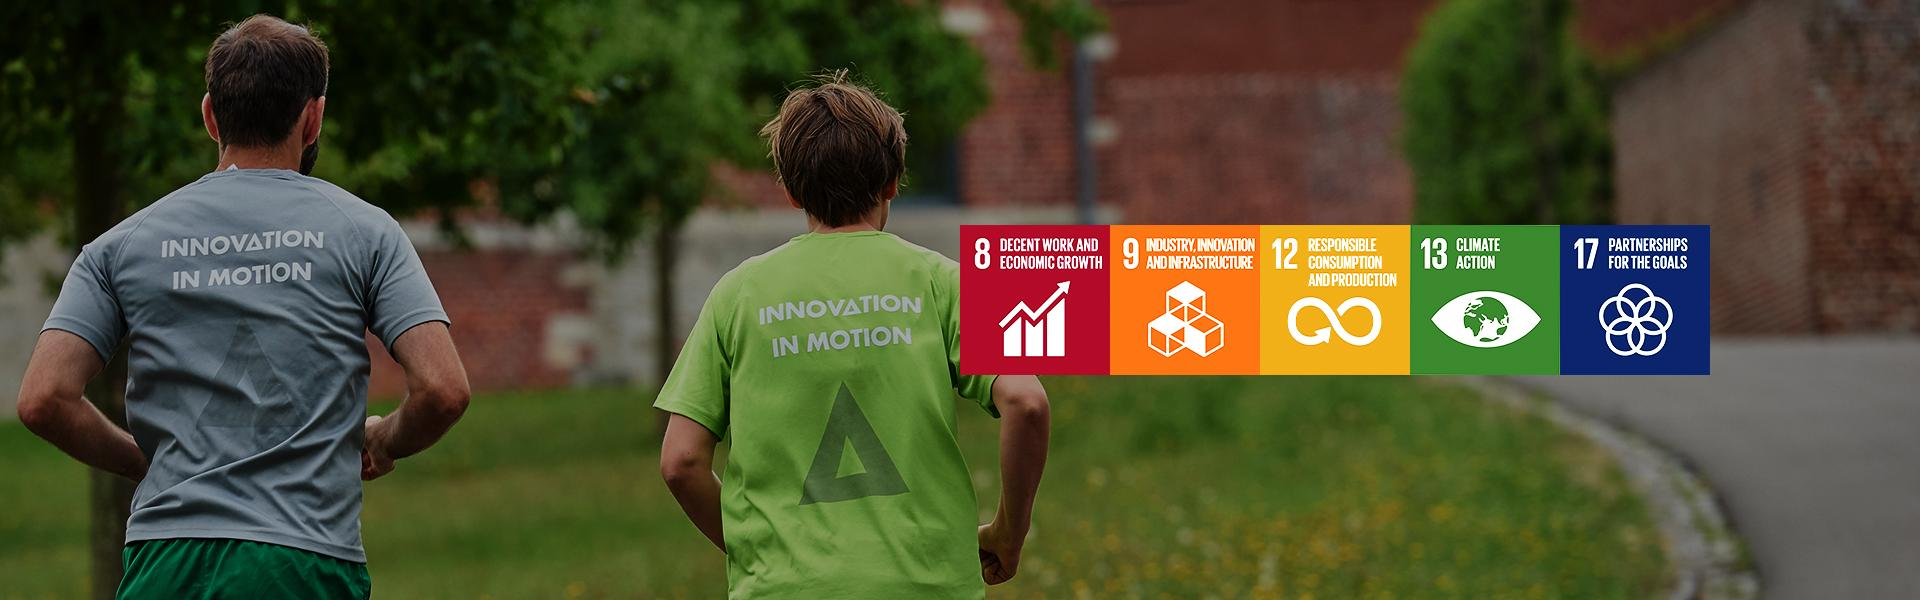 Flanders Make committed to 5 sustainable development objectives of the UN.